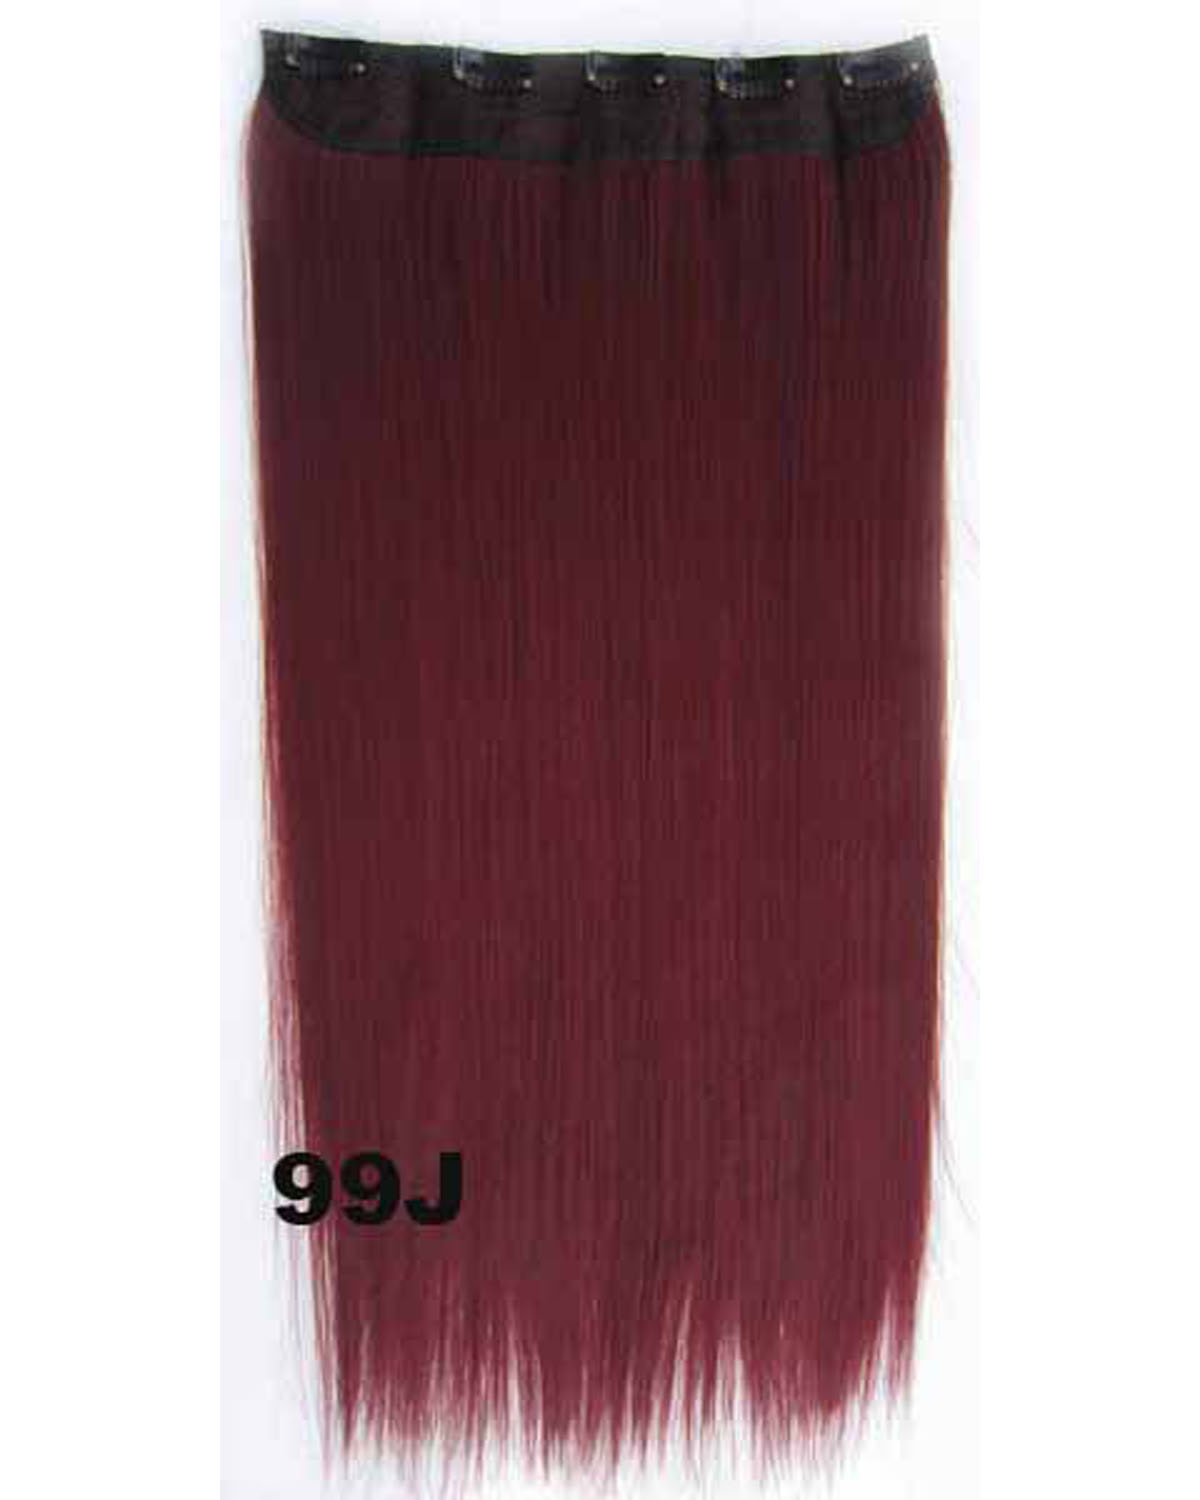 24 Inch Female Exquisite Long and Straight Hot-Sale One Piece 5 Clips Clip in Synthetic Hair Extension 99J